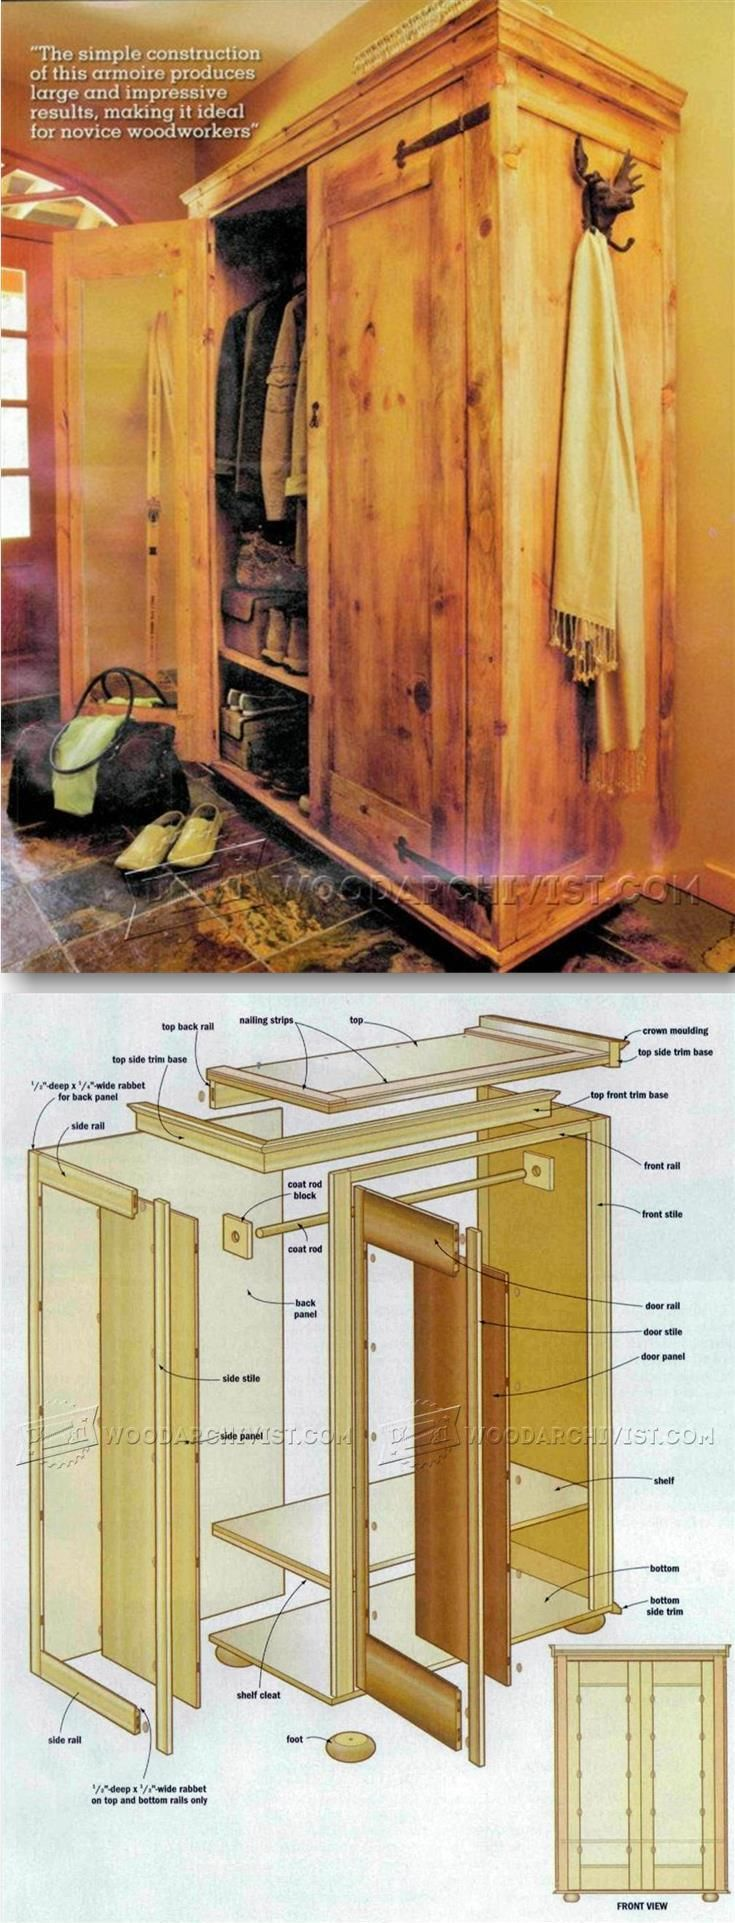 Rustic Armoire Plans - Furniture Plans and Projects | WoodArchivist.com